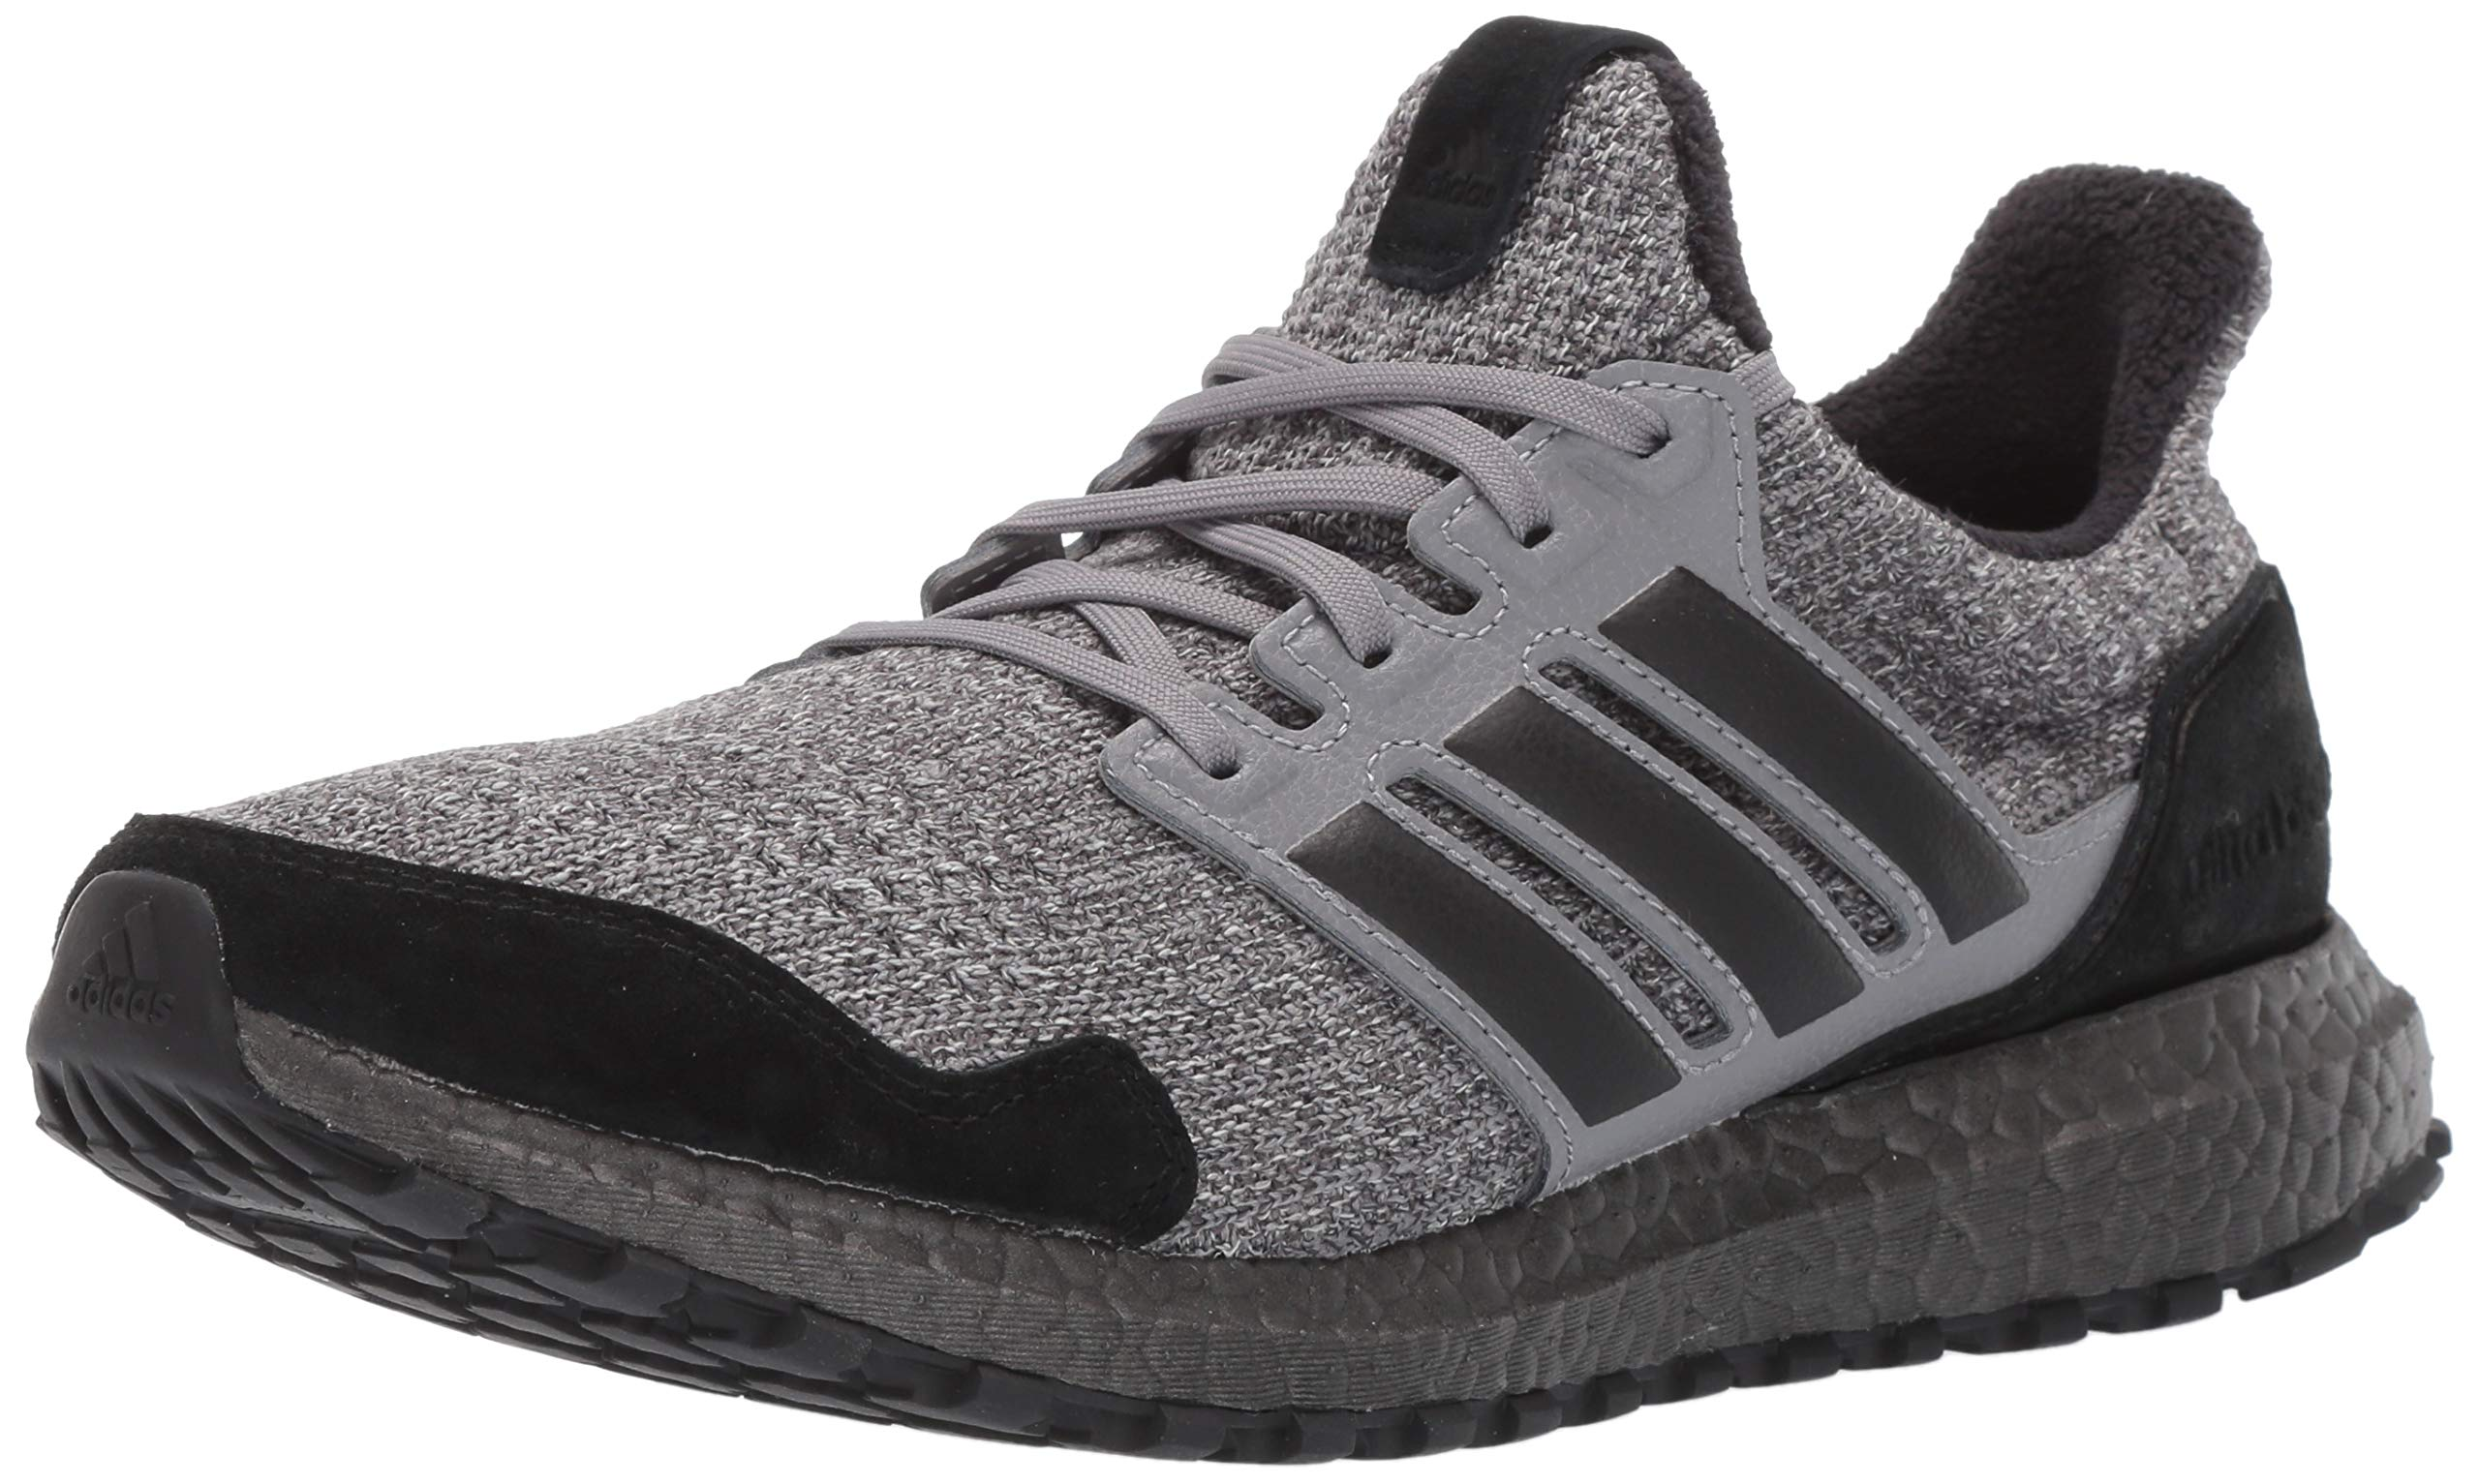 adidas x Game of Thrones Men's Ultraboost Running Shoes, House Stark 7 M US, 7 M US by adidas (Image #1)